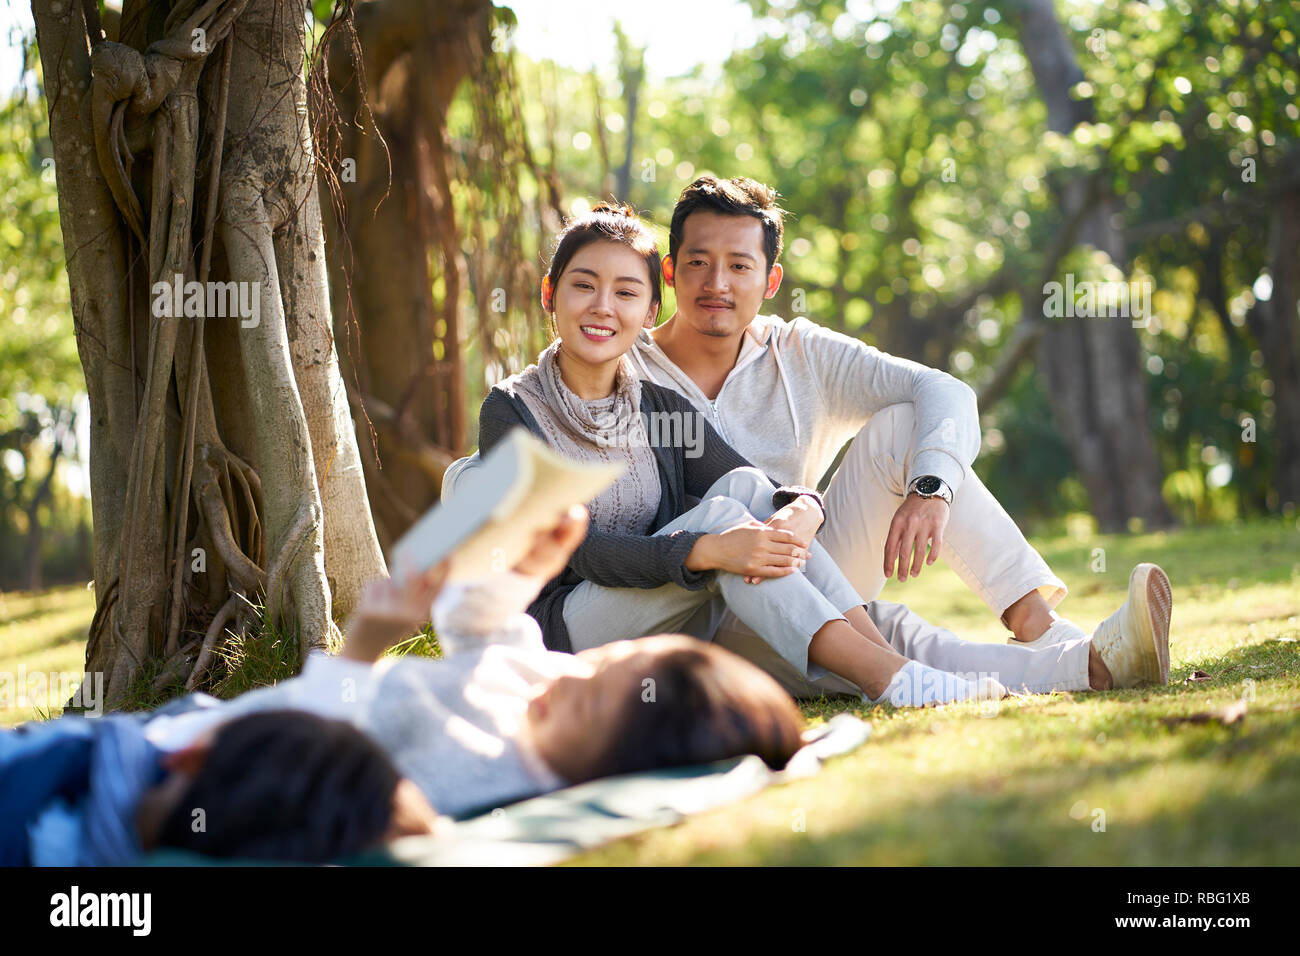 two asian children little boy and girl having fun lying on grass reading a book with parents sitting watching in background. Stock Photo